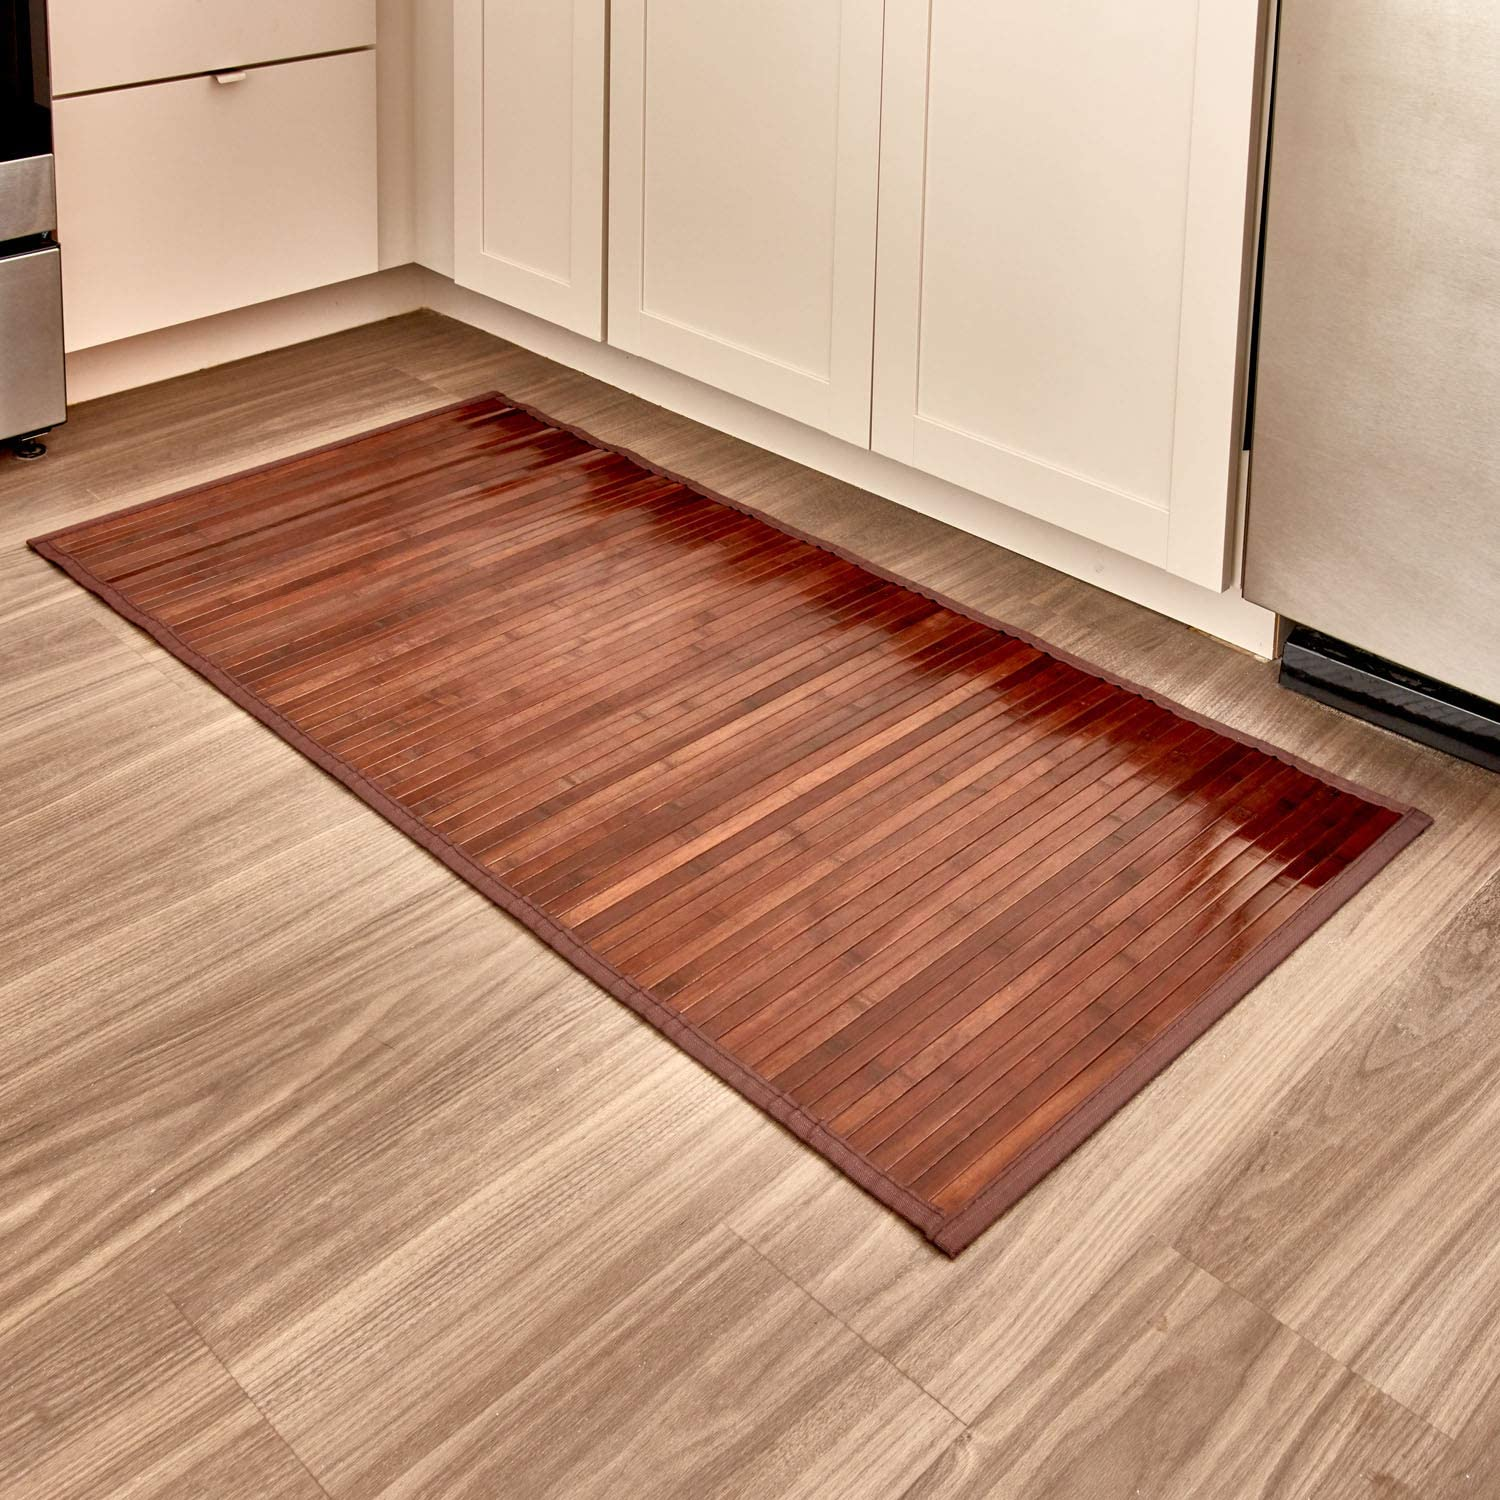 "iDesign Formbu Bamboo Floor Mat Non-Skid, Water-Resistant Runner Rug for Bathroom, Kitchen, Entryway, Hallway, Office, Mudroom, Vanity , 48"" x 24"", Mocha Brown"